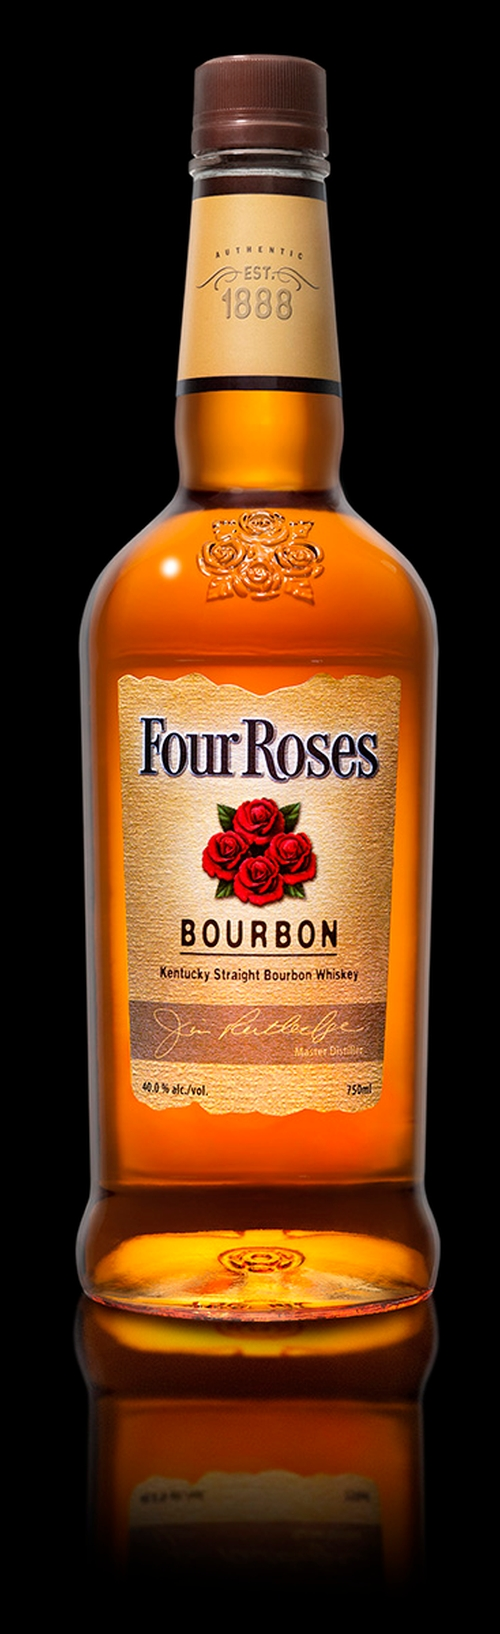 Yellow Label Bourbon Whiskey by Four Roses in Jessica Jones - Season 1 Episode 10